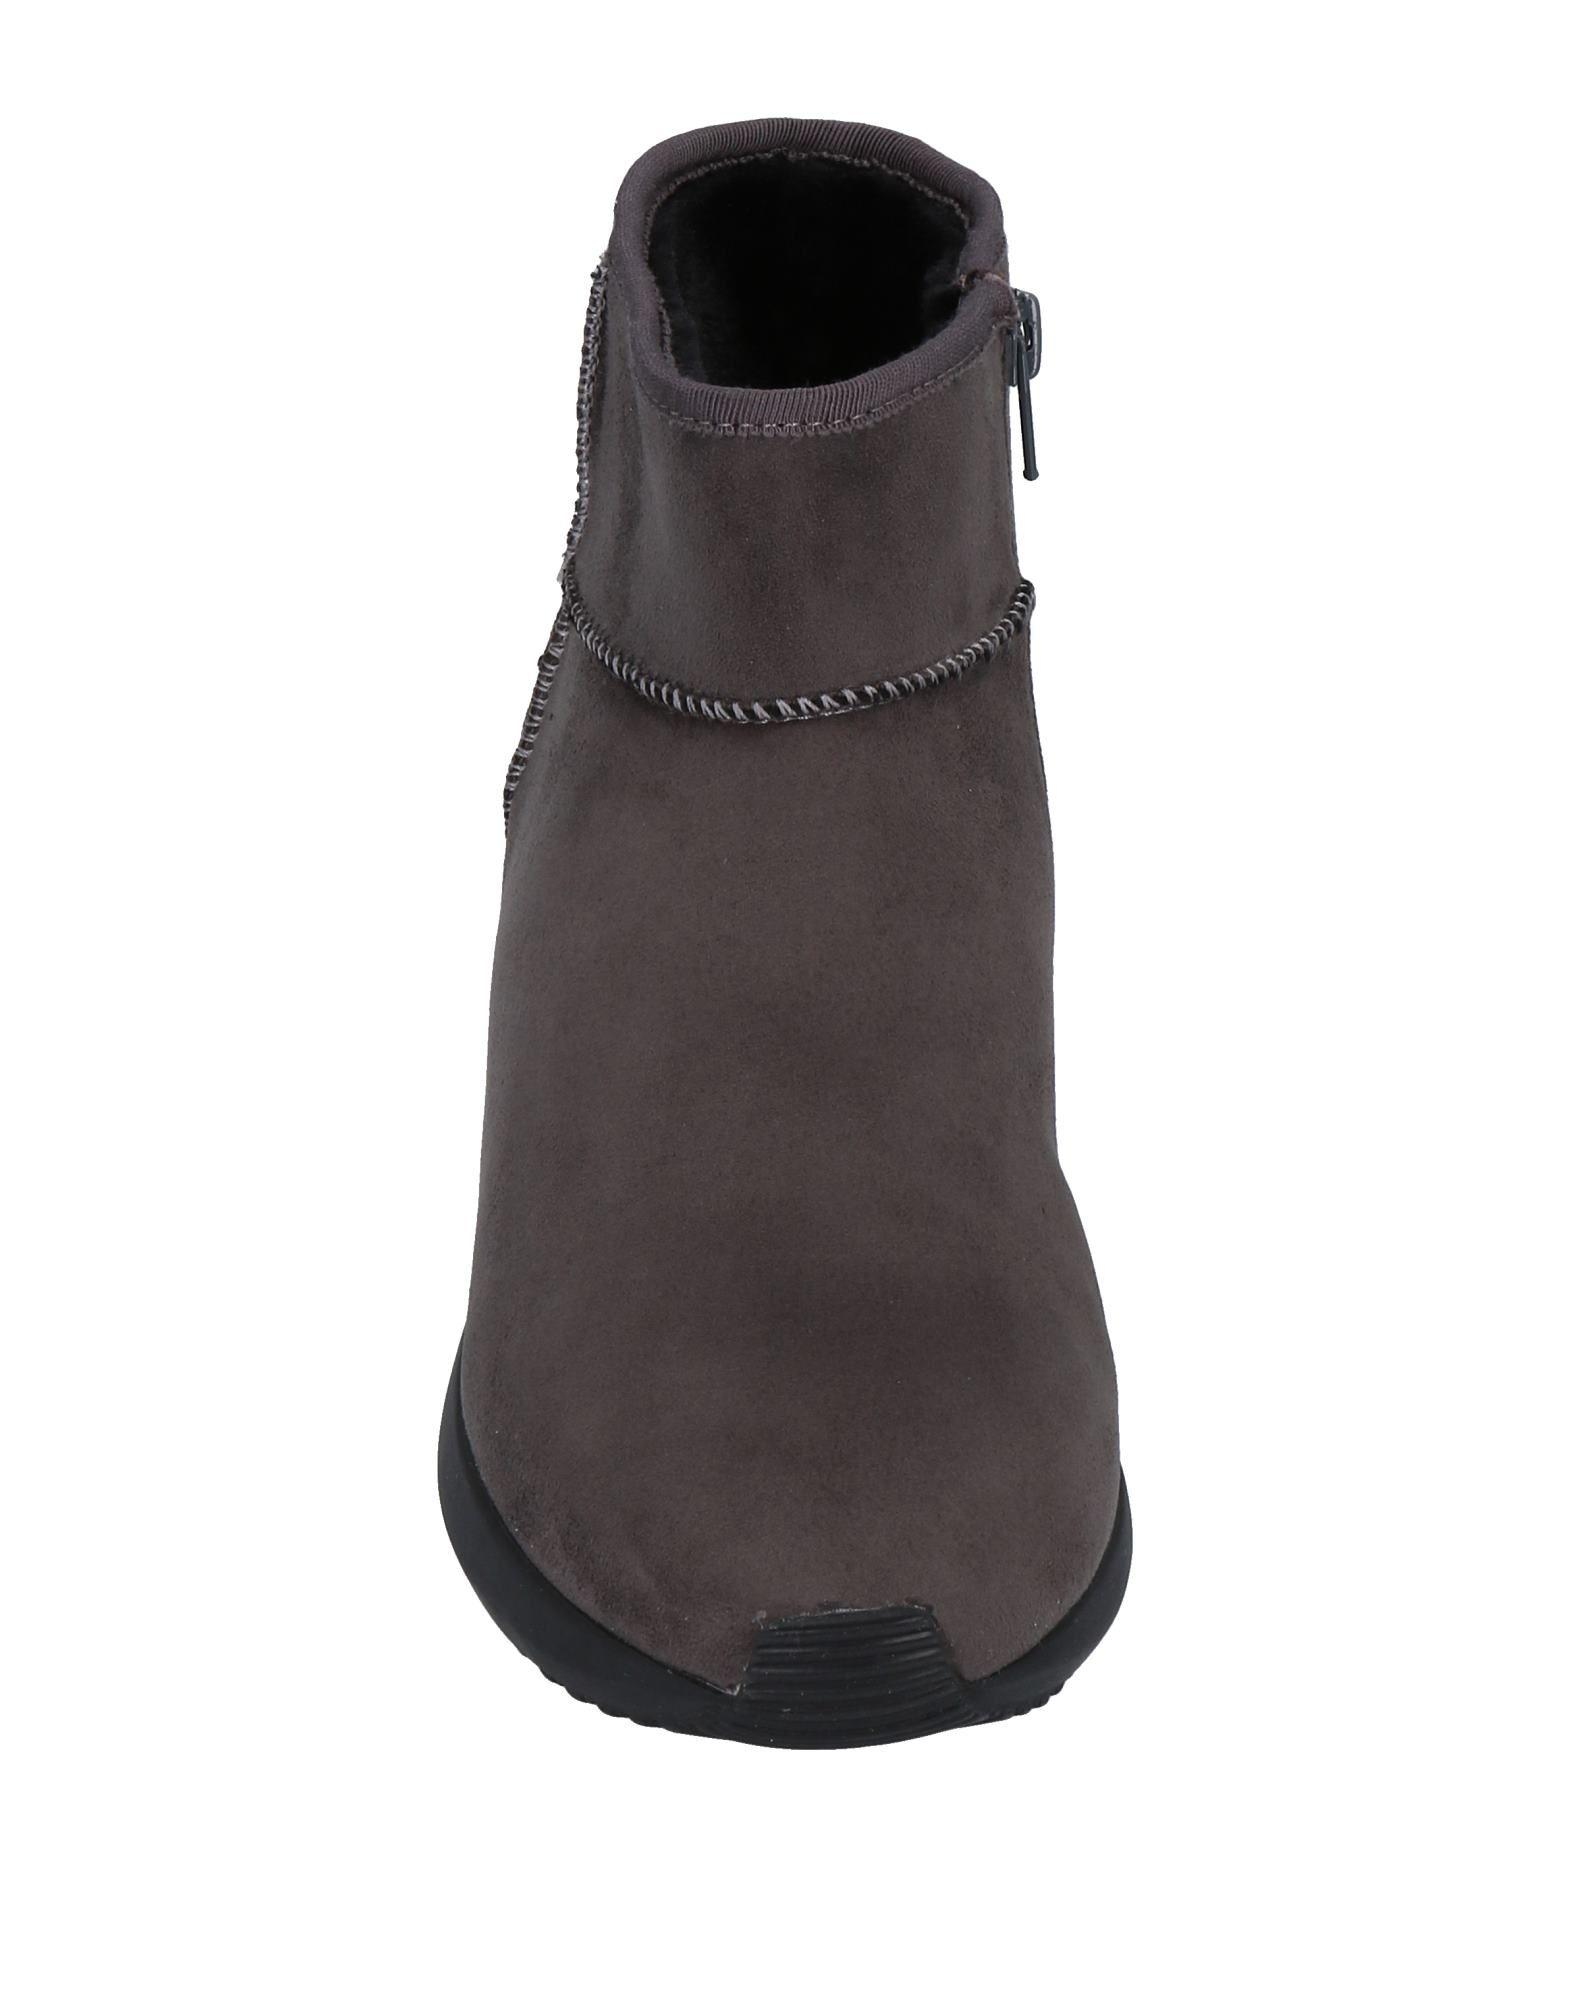 CafeNoir Suede Ankle Boots in Lead (Grey)